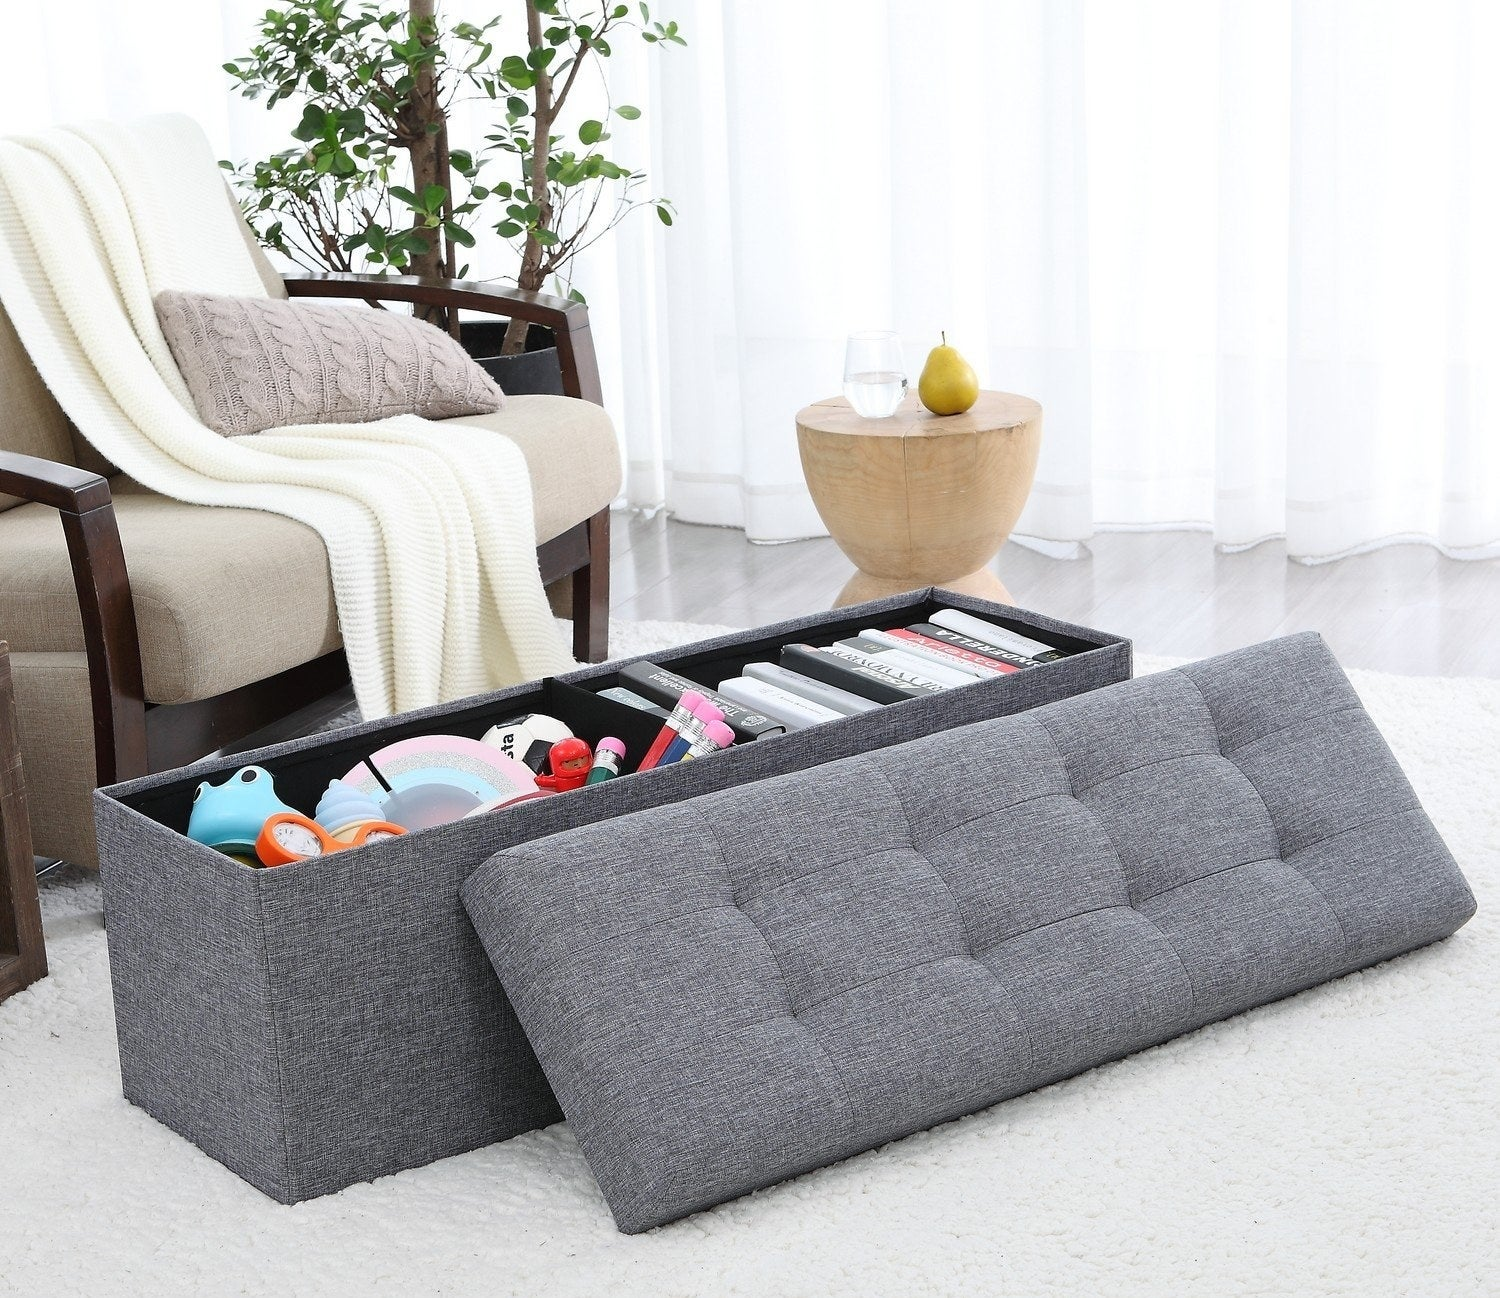 """The bonus? It comes in three sizes and is upholstered in a linen fabric, so it's super durable. The tufted, cushioned top makes it a great option for extra seating.Promising review: """"This is a heavy and sturdy collapsible bench unlike others I've had before. I'm very impressed honestly. The top is thick and cushioned and the bench can easily hold my weight. Color is true to photo. It comes with an optional divider, if you'd like to divide the inside space."""" —CheyNickoleGet it from Amazon for $33.99+ (available in three sizes and eight colors)."""